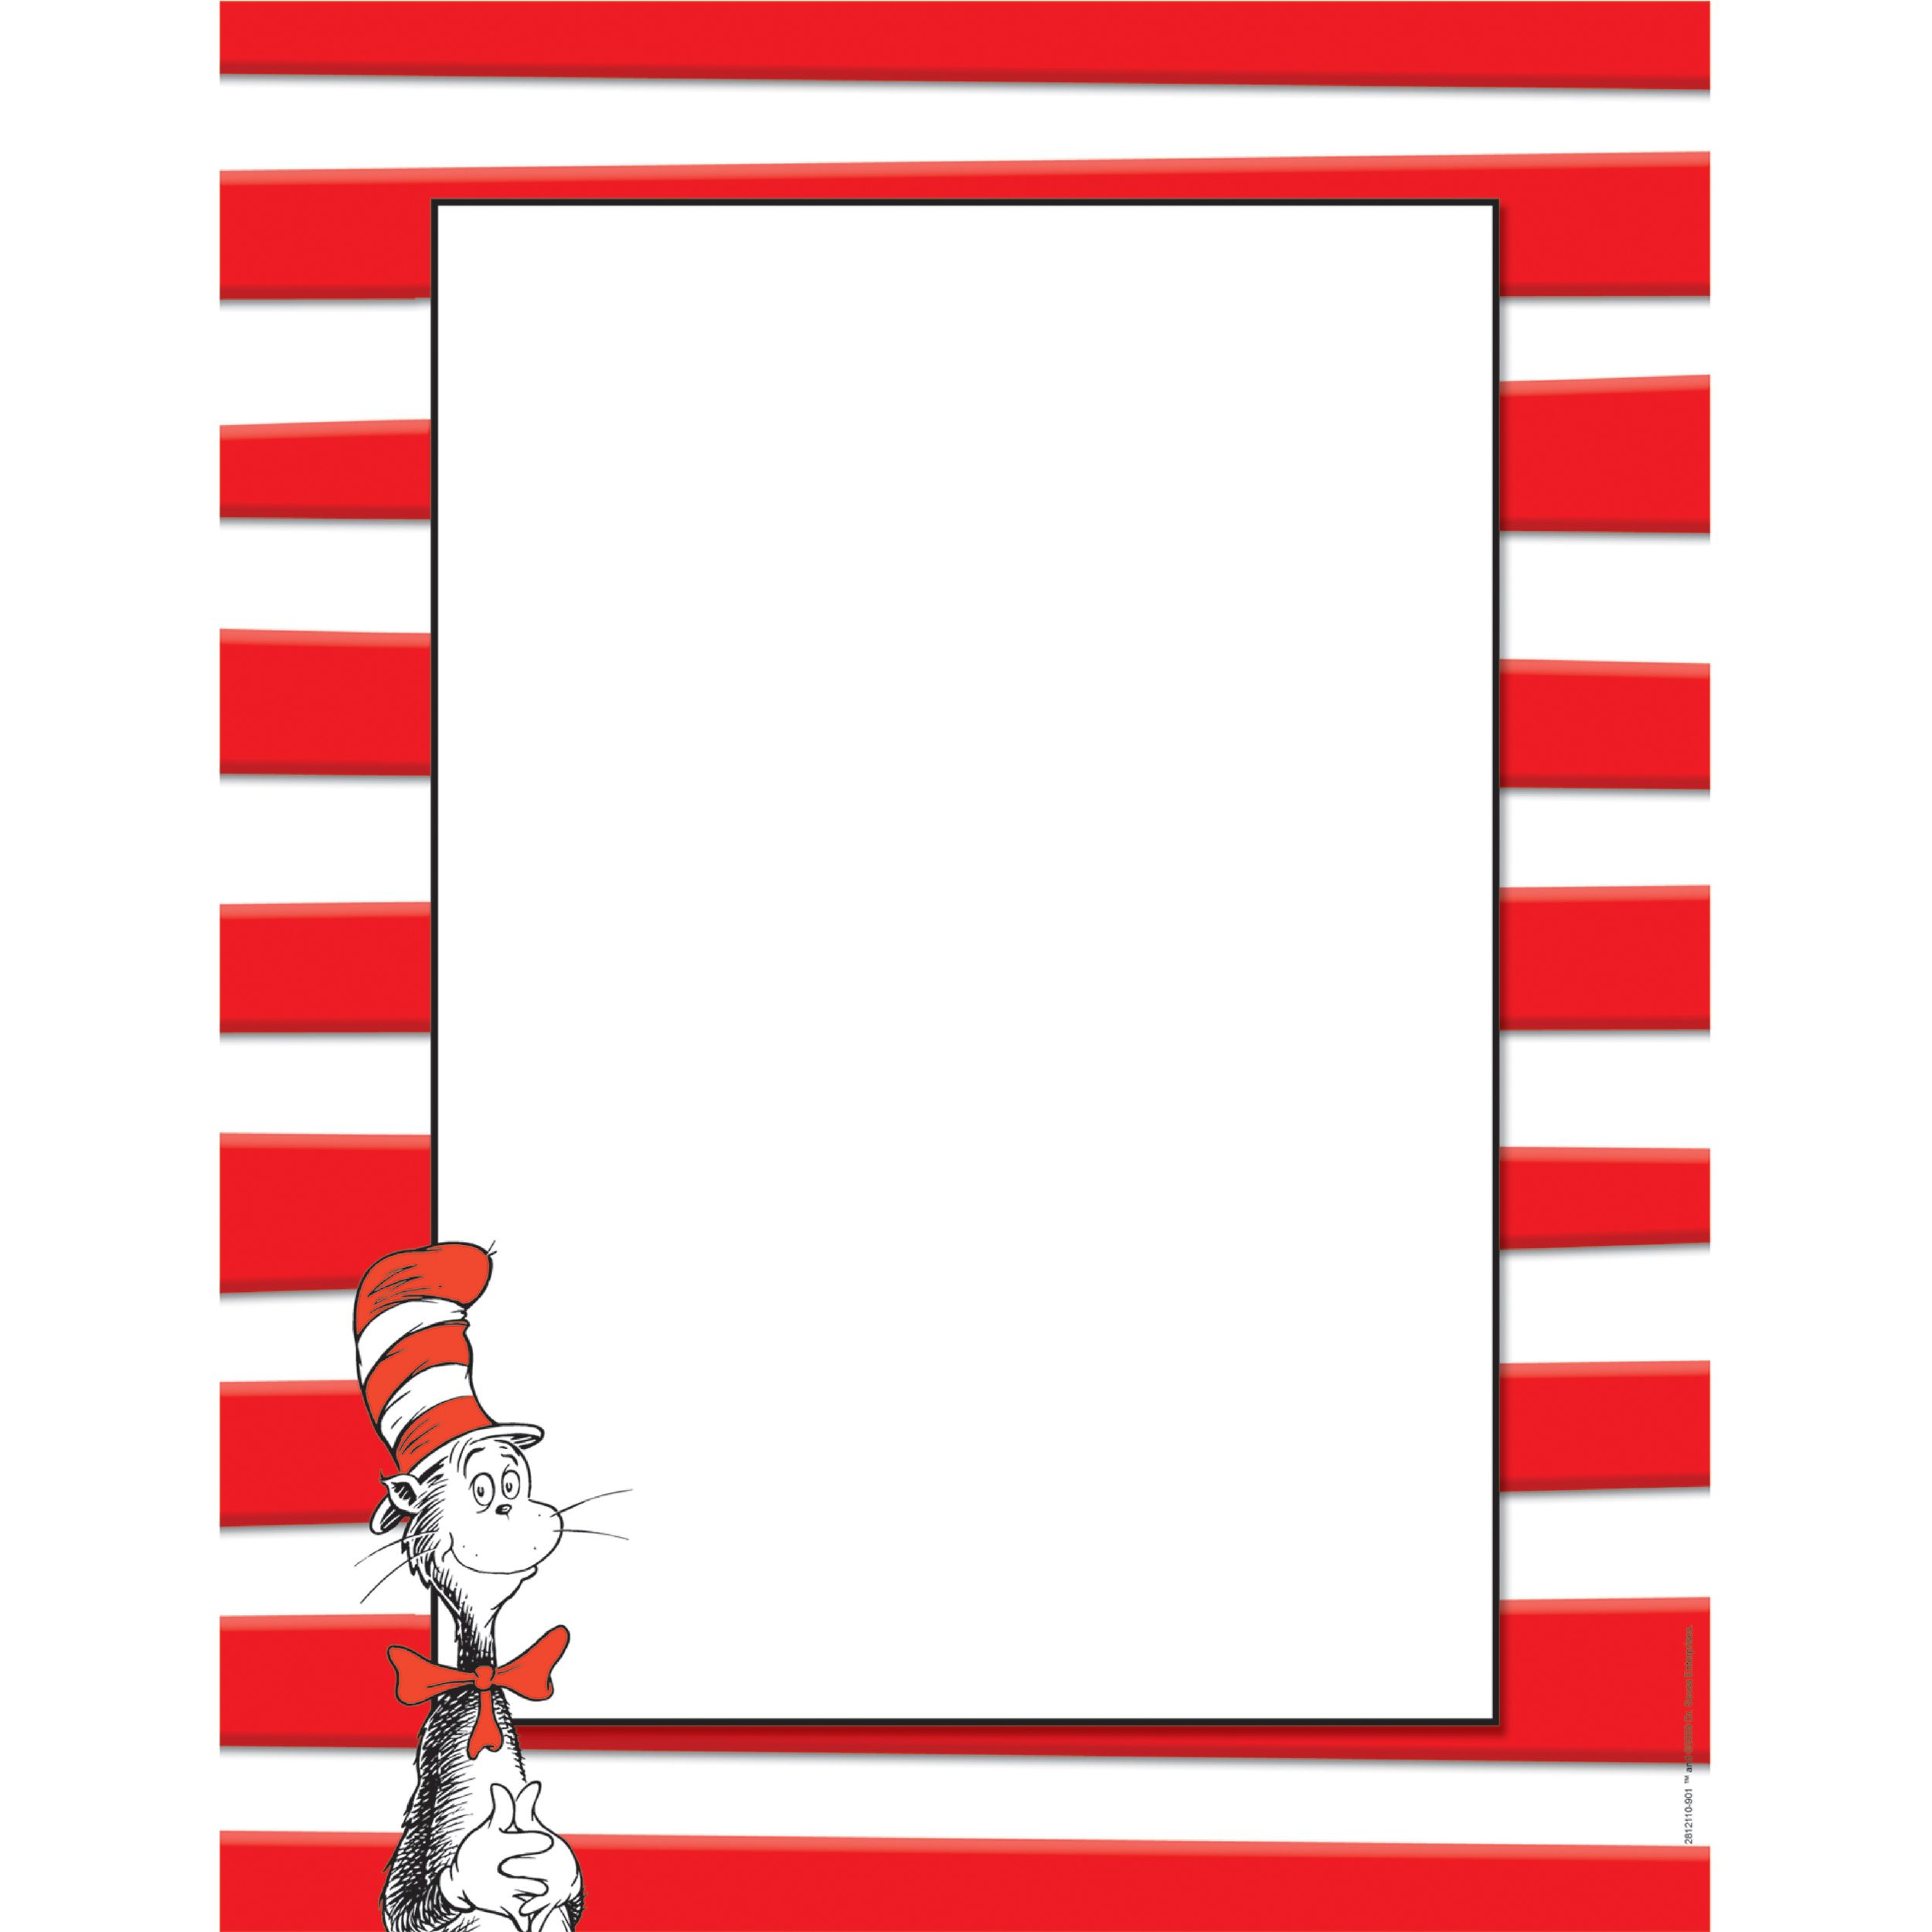 Seuss The Cat in the Hat Computer Paper by Eureka Dr